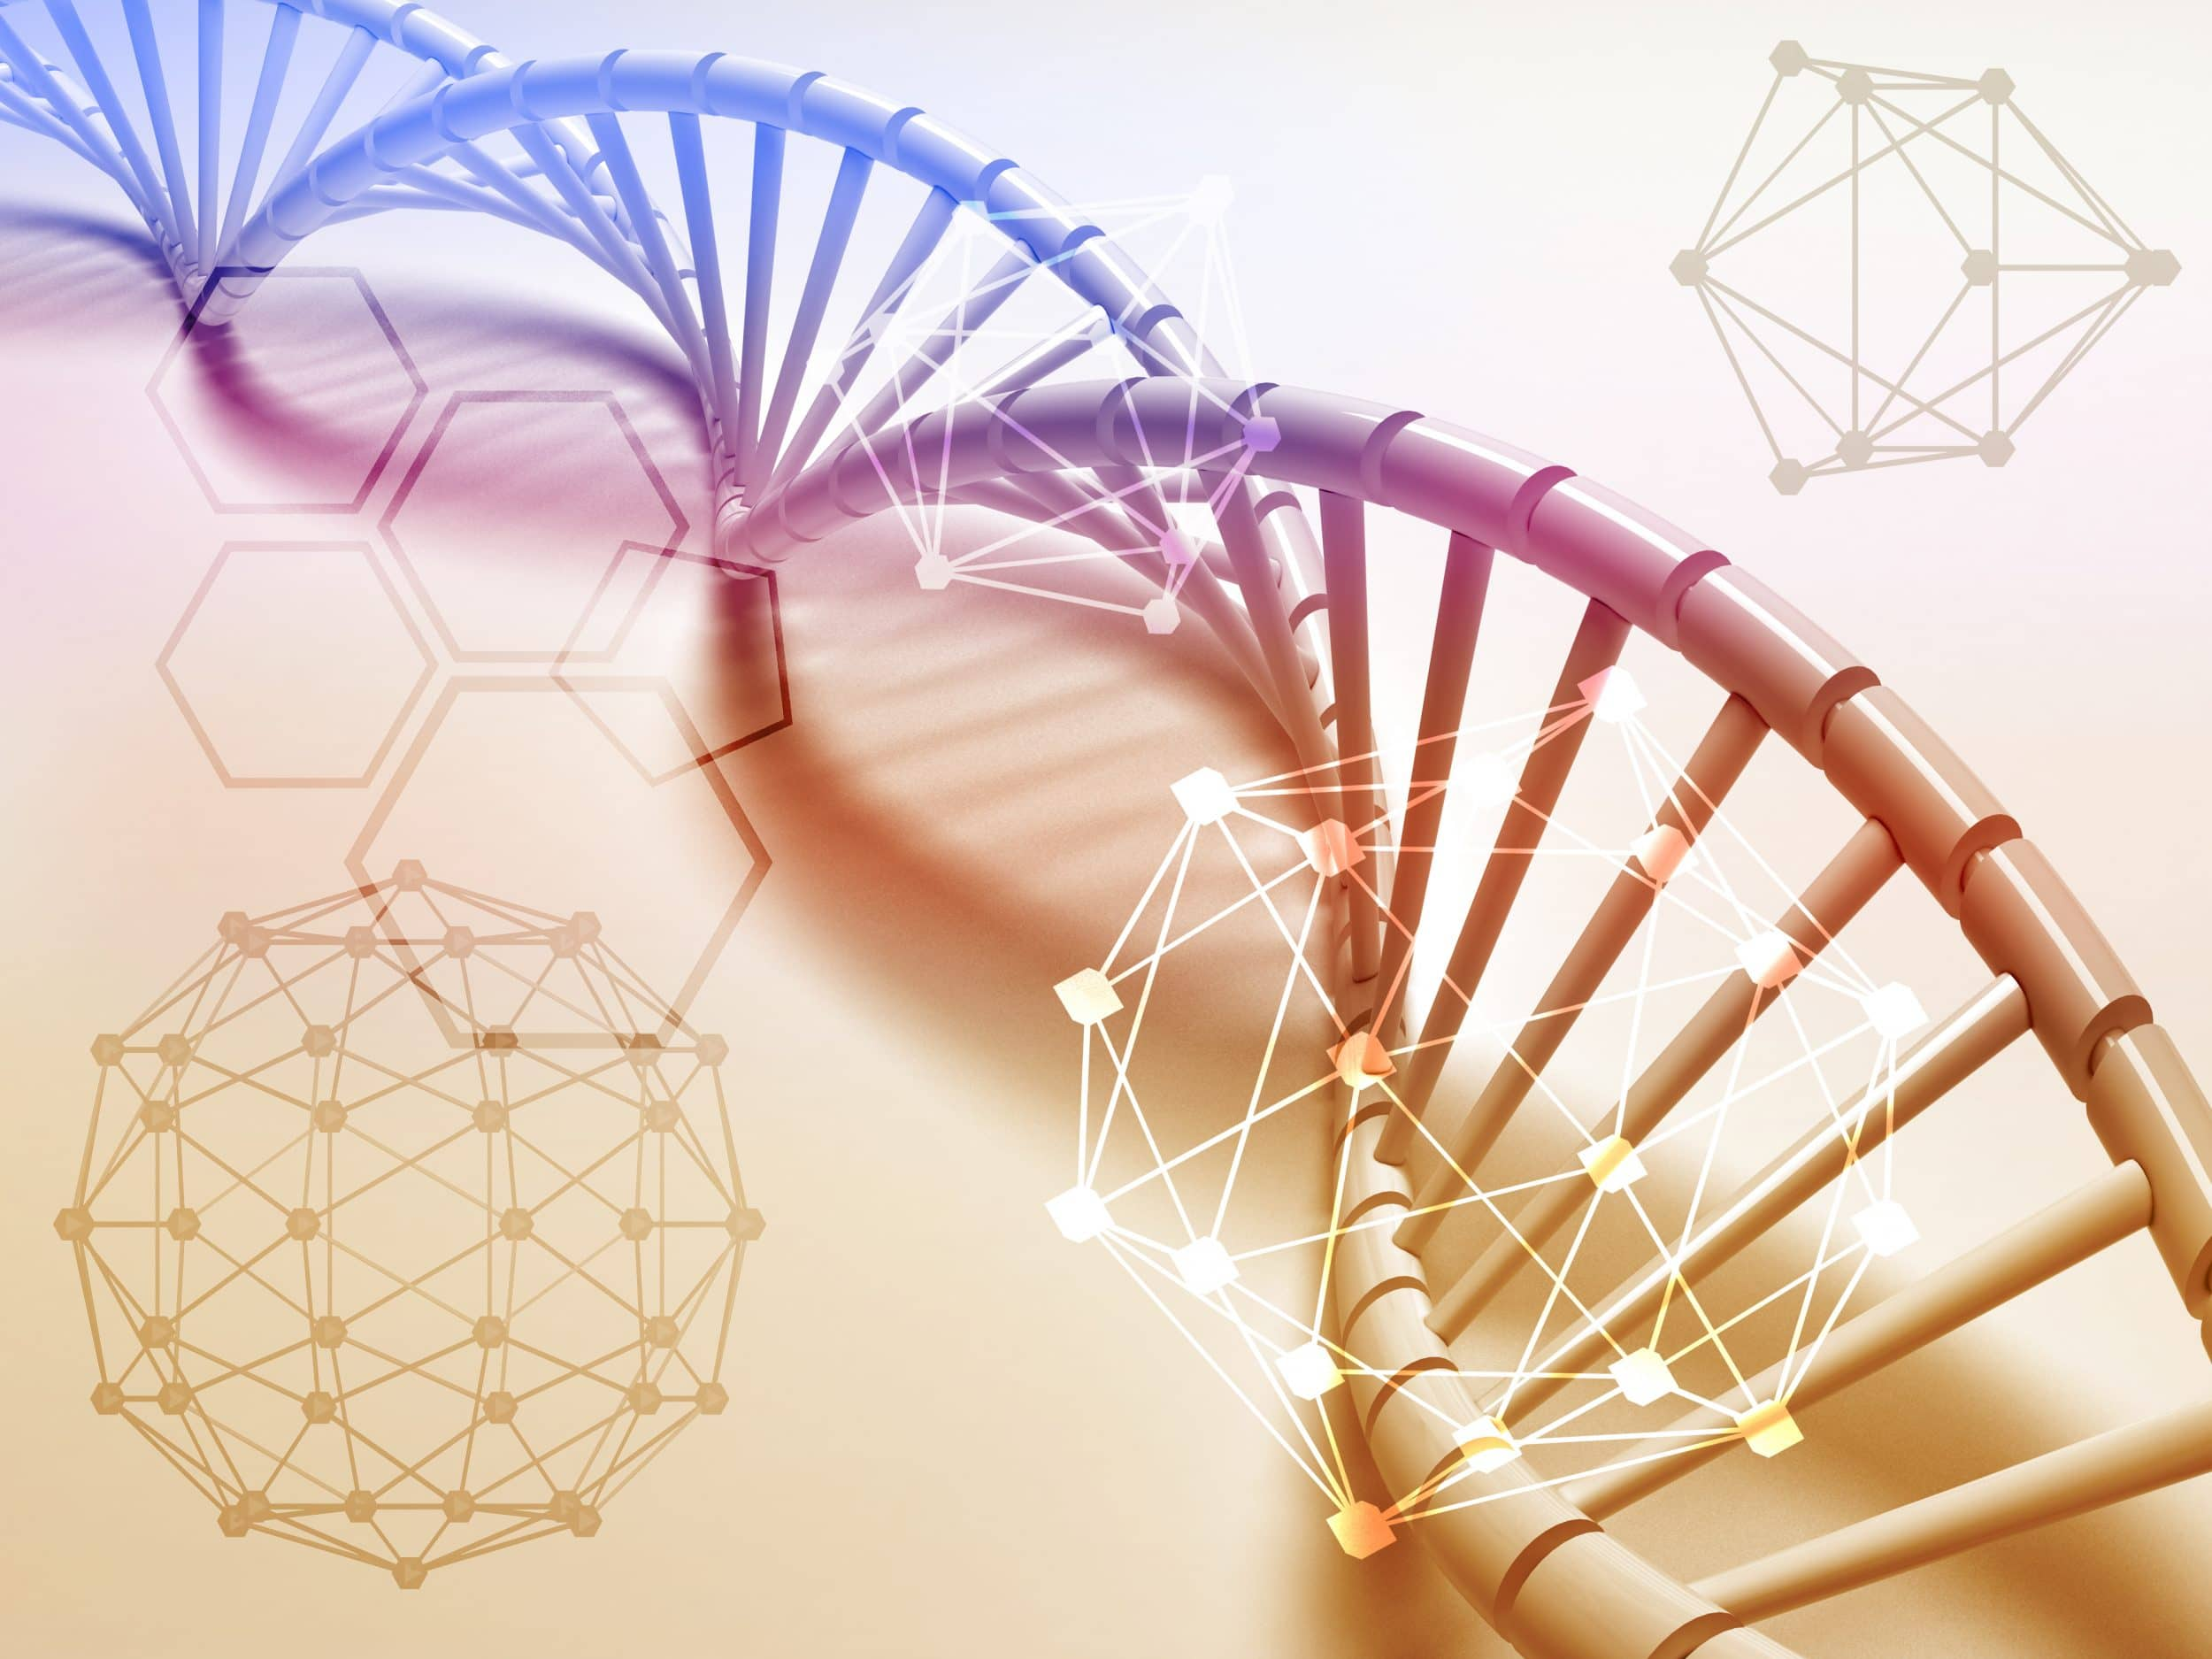 Dna,Structure,Abstract,Concept,With,Chemical,Polygon.